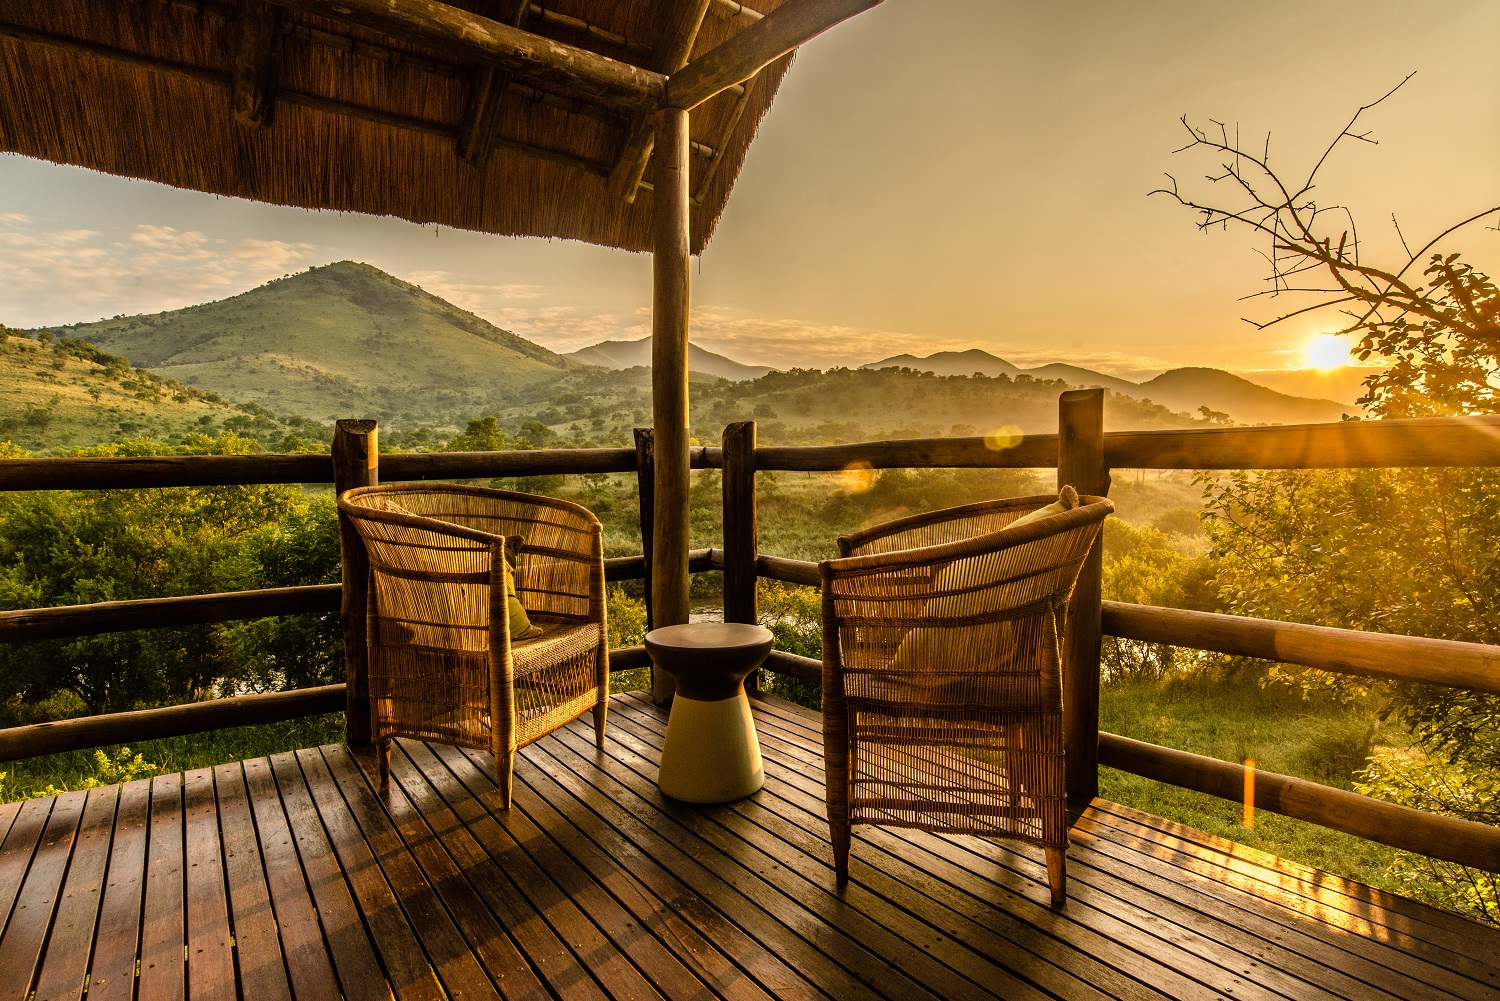 Enjoy leisure time watching the sun set over the bush